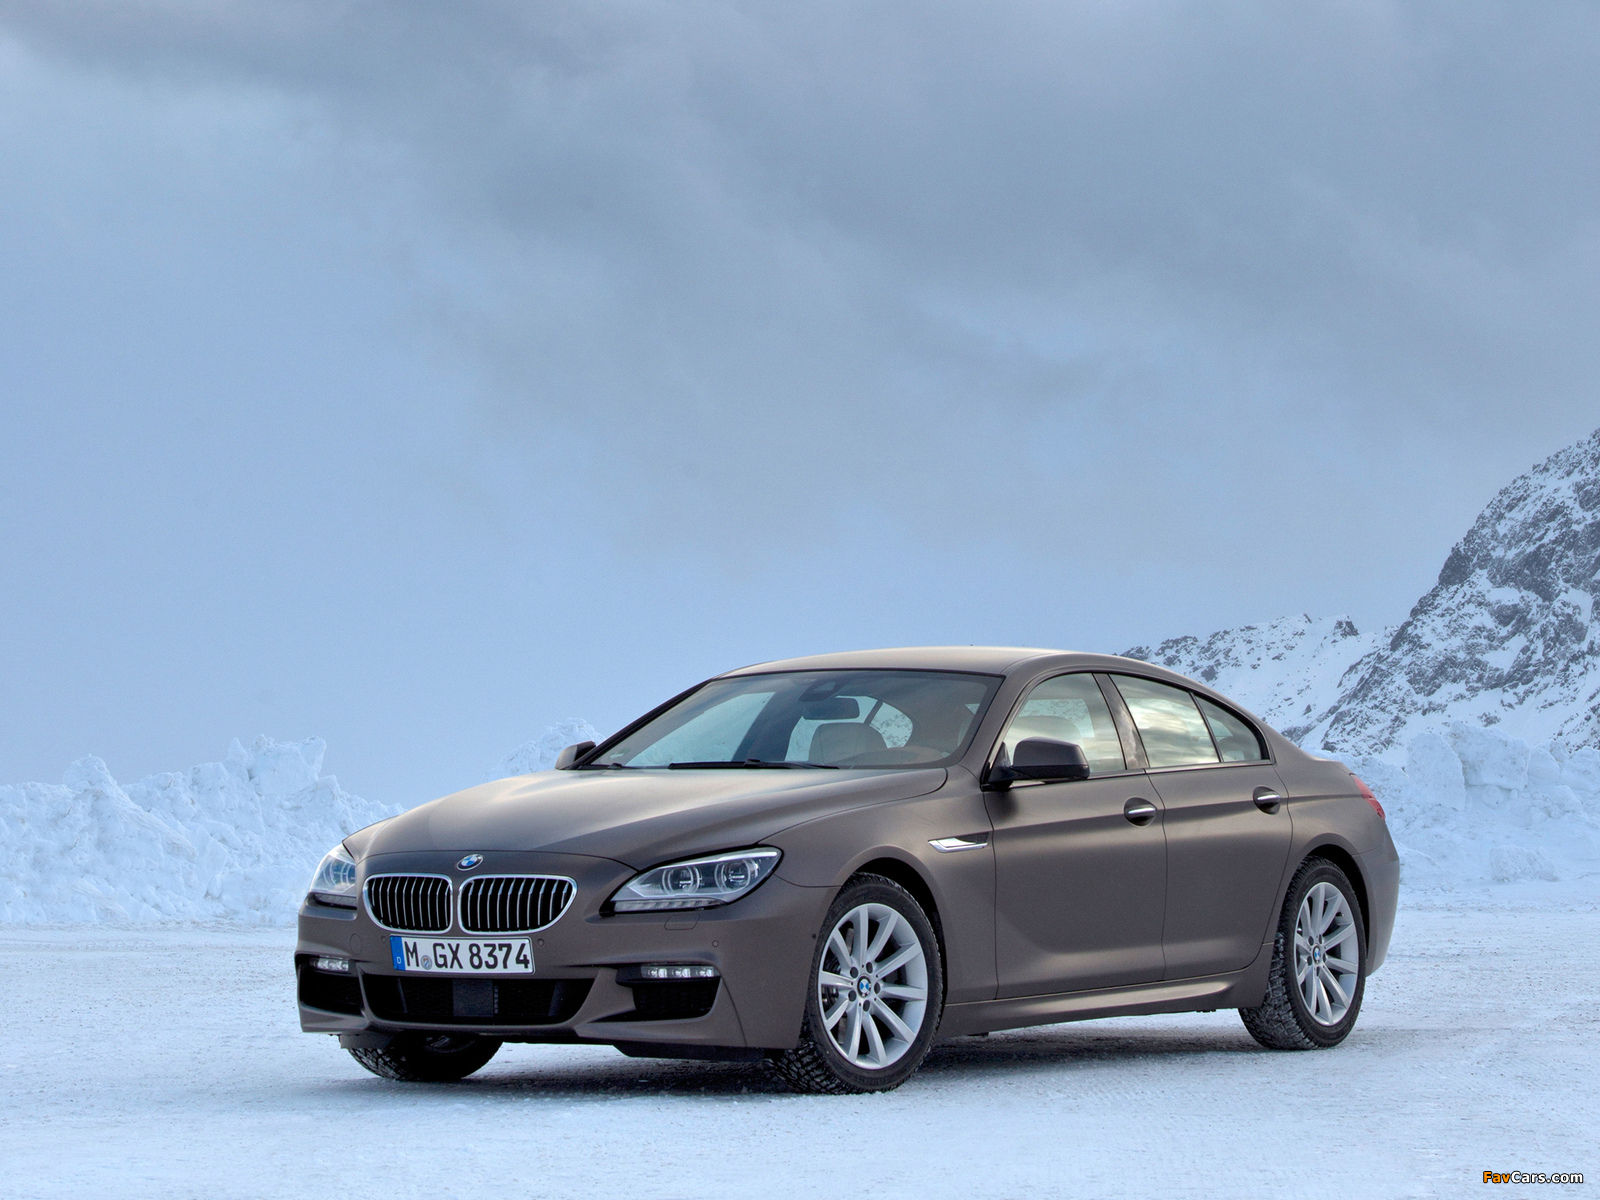 640i Gran Coupe >> BMW 640i xDrive Gran Coupe M Sport Package (F06) 2013 ...